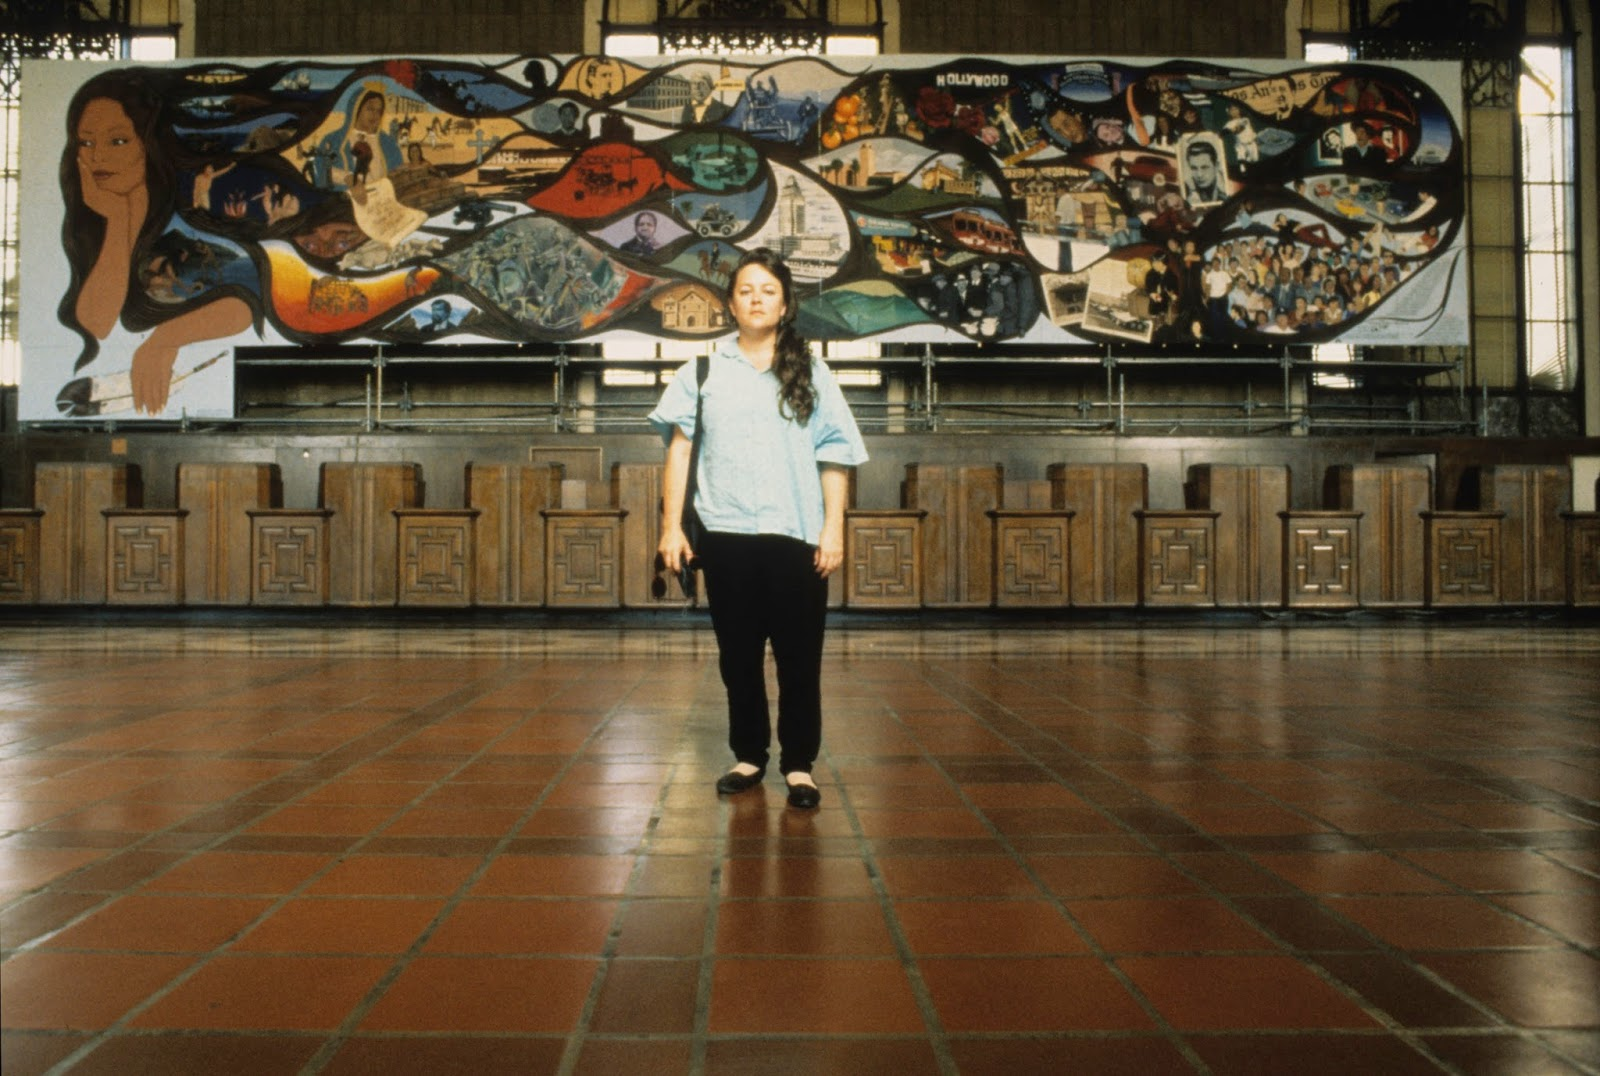 Barbara Carrasco's massive L.A. History: A Mexican Perspective (1981) never made it to its designated location at 330 South Broadway in downtown Los Angeles due to its honest portrayal of Los Angeles's history. Today it is in storage but will be brought to light again in the exhibition.